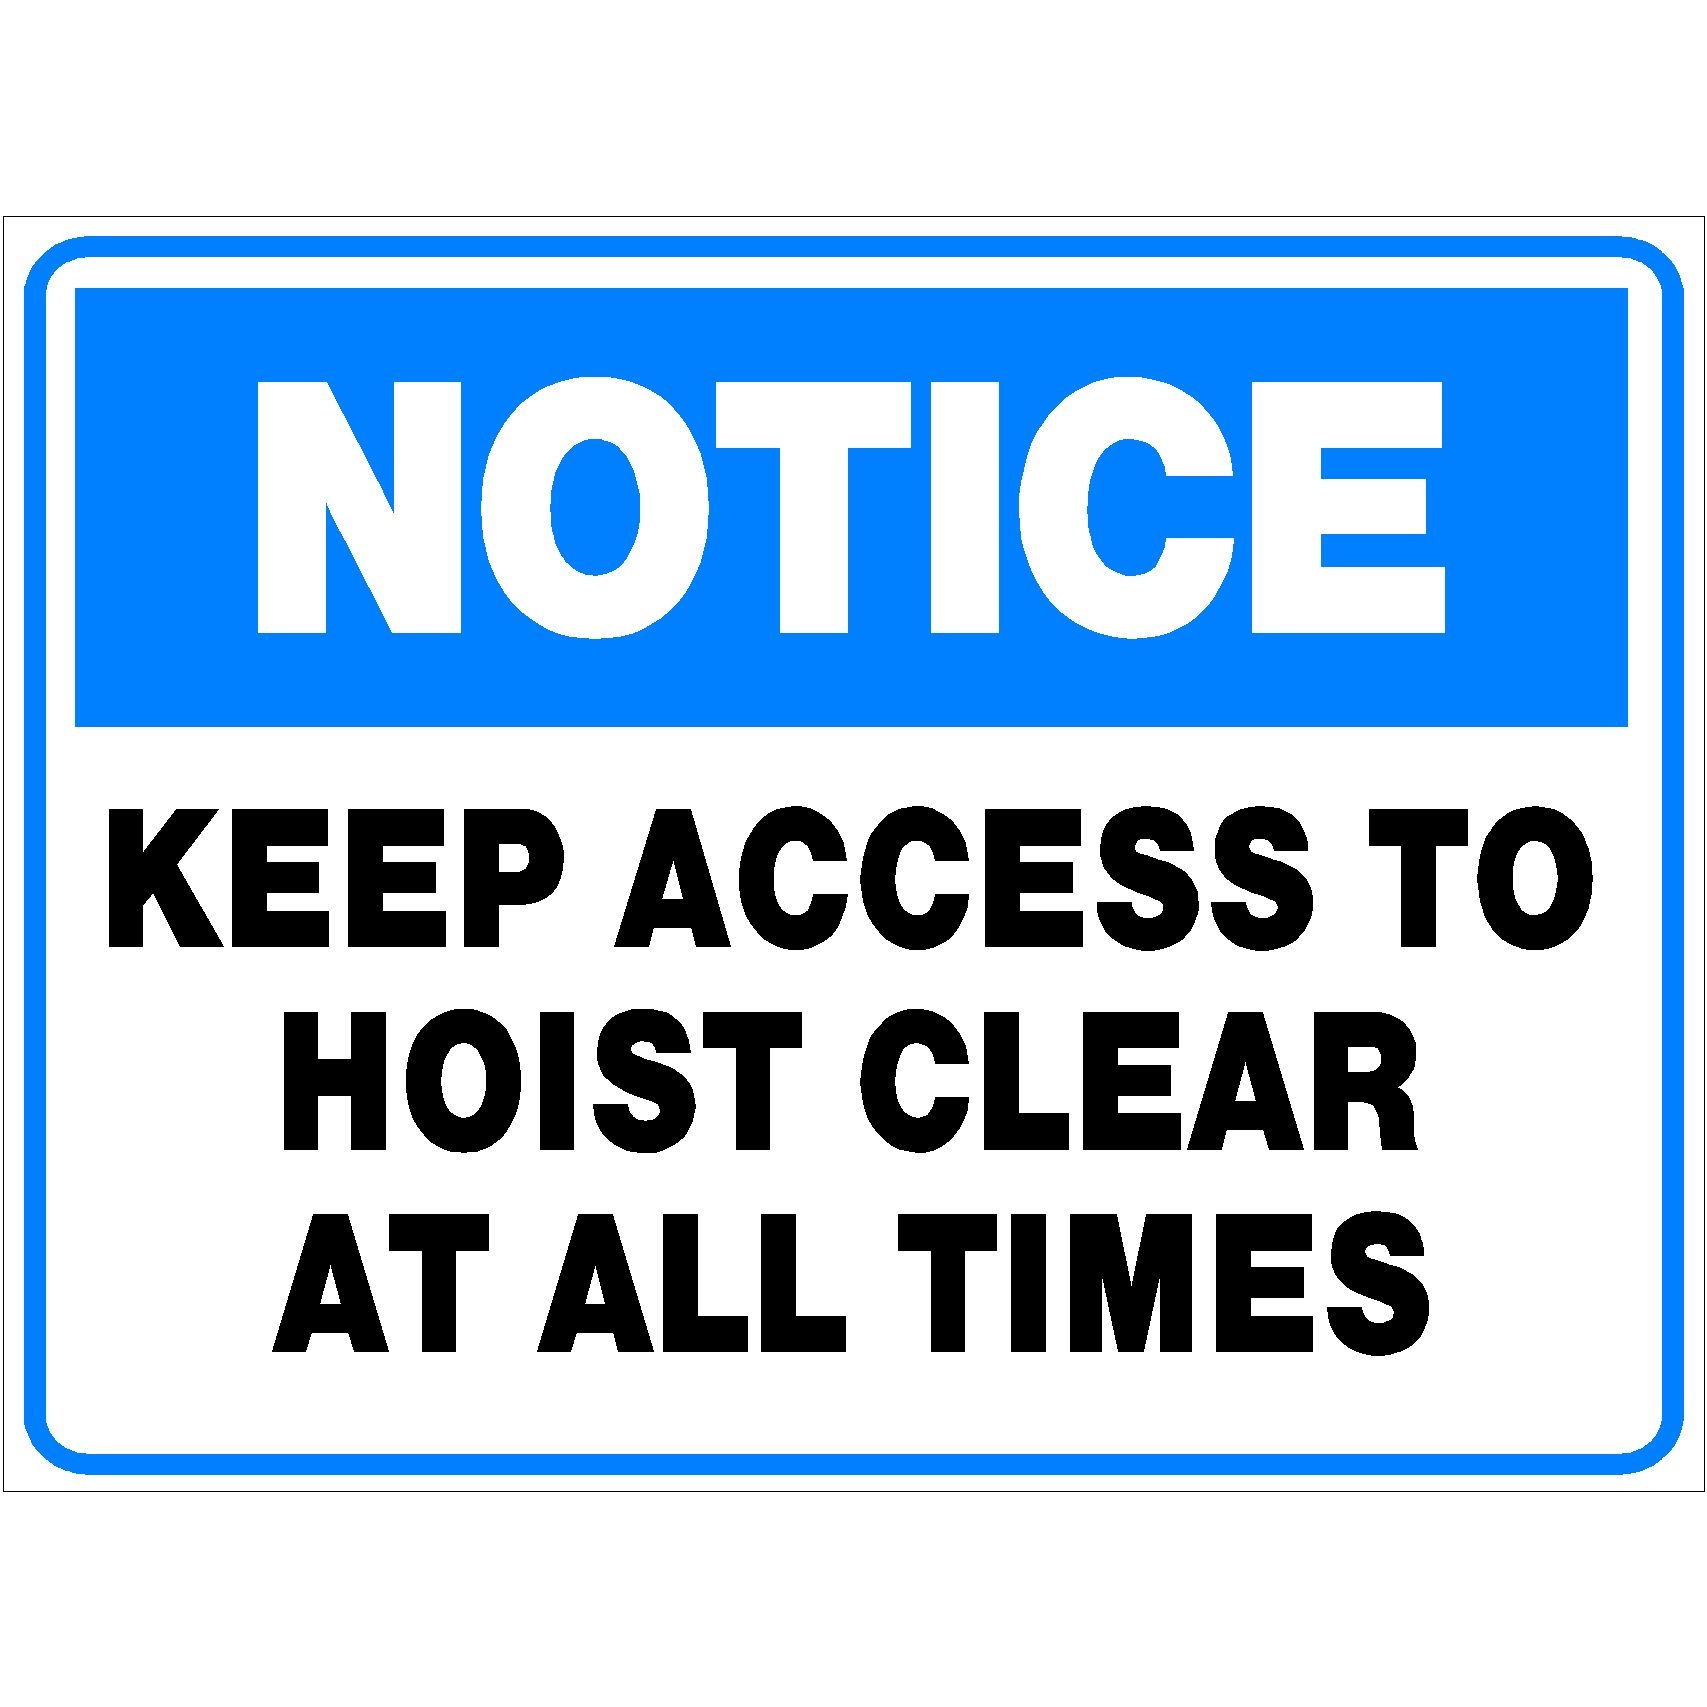 Notice Keep Access To Hoist Clear At All Times